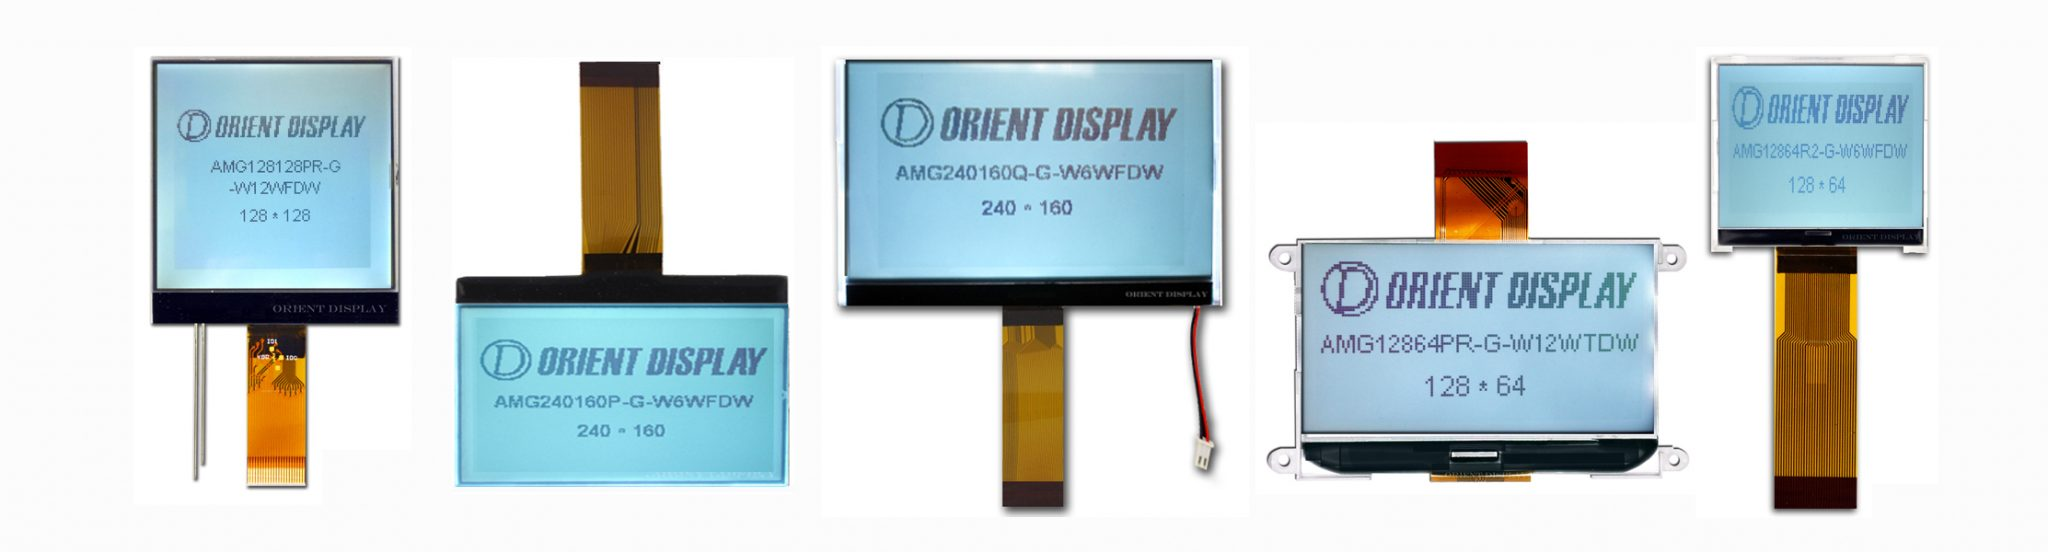 Orient Display: COG/Chip on Glass Graphic LCD Display, multiple resolution choices, FSTN Positive, White LED Backlight